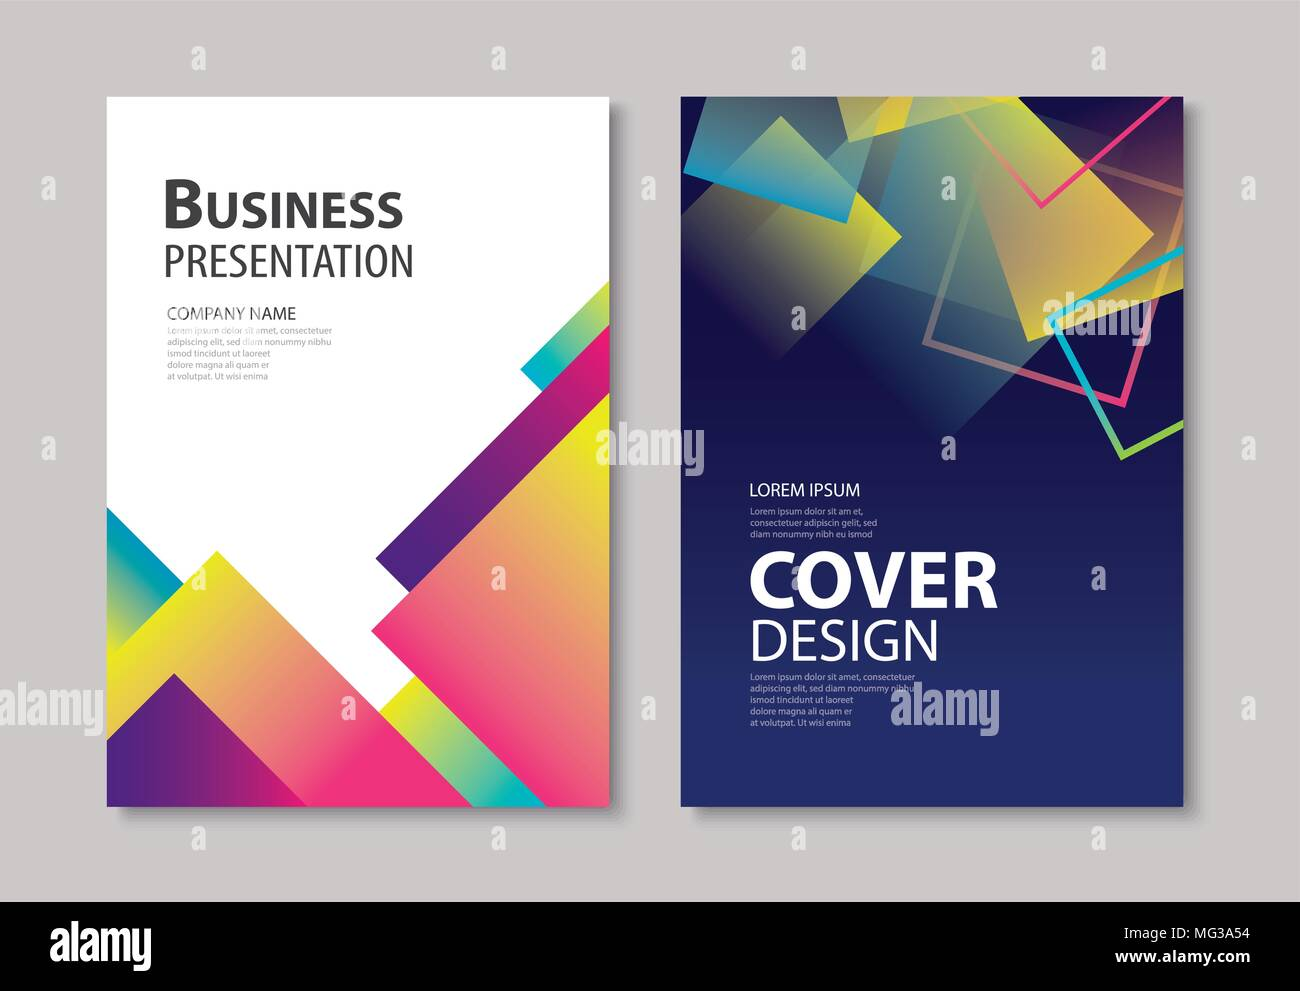 Book Cover Design Template Ai : Abstract gradient modern geometric flyer and poster design